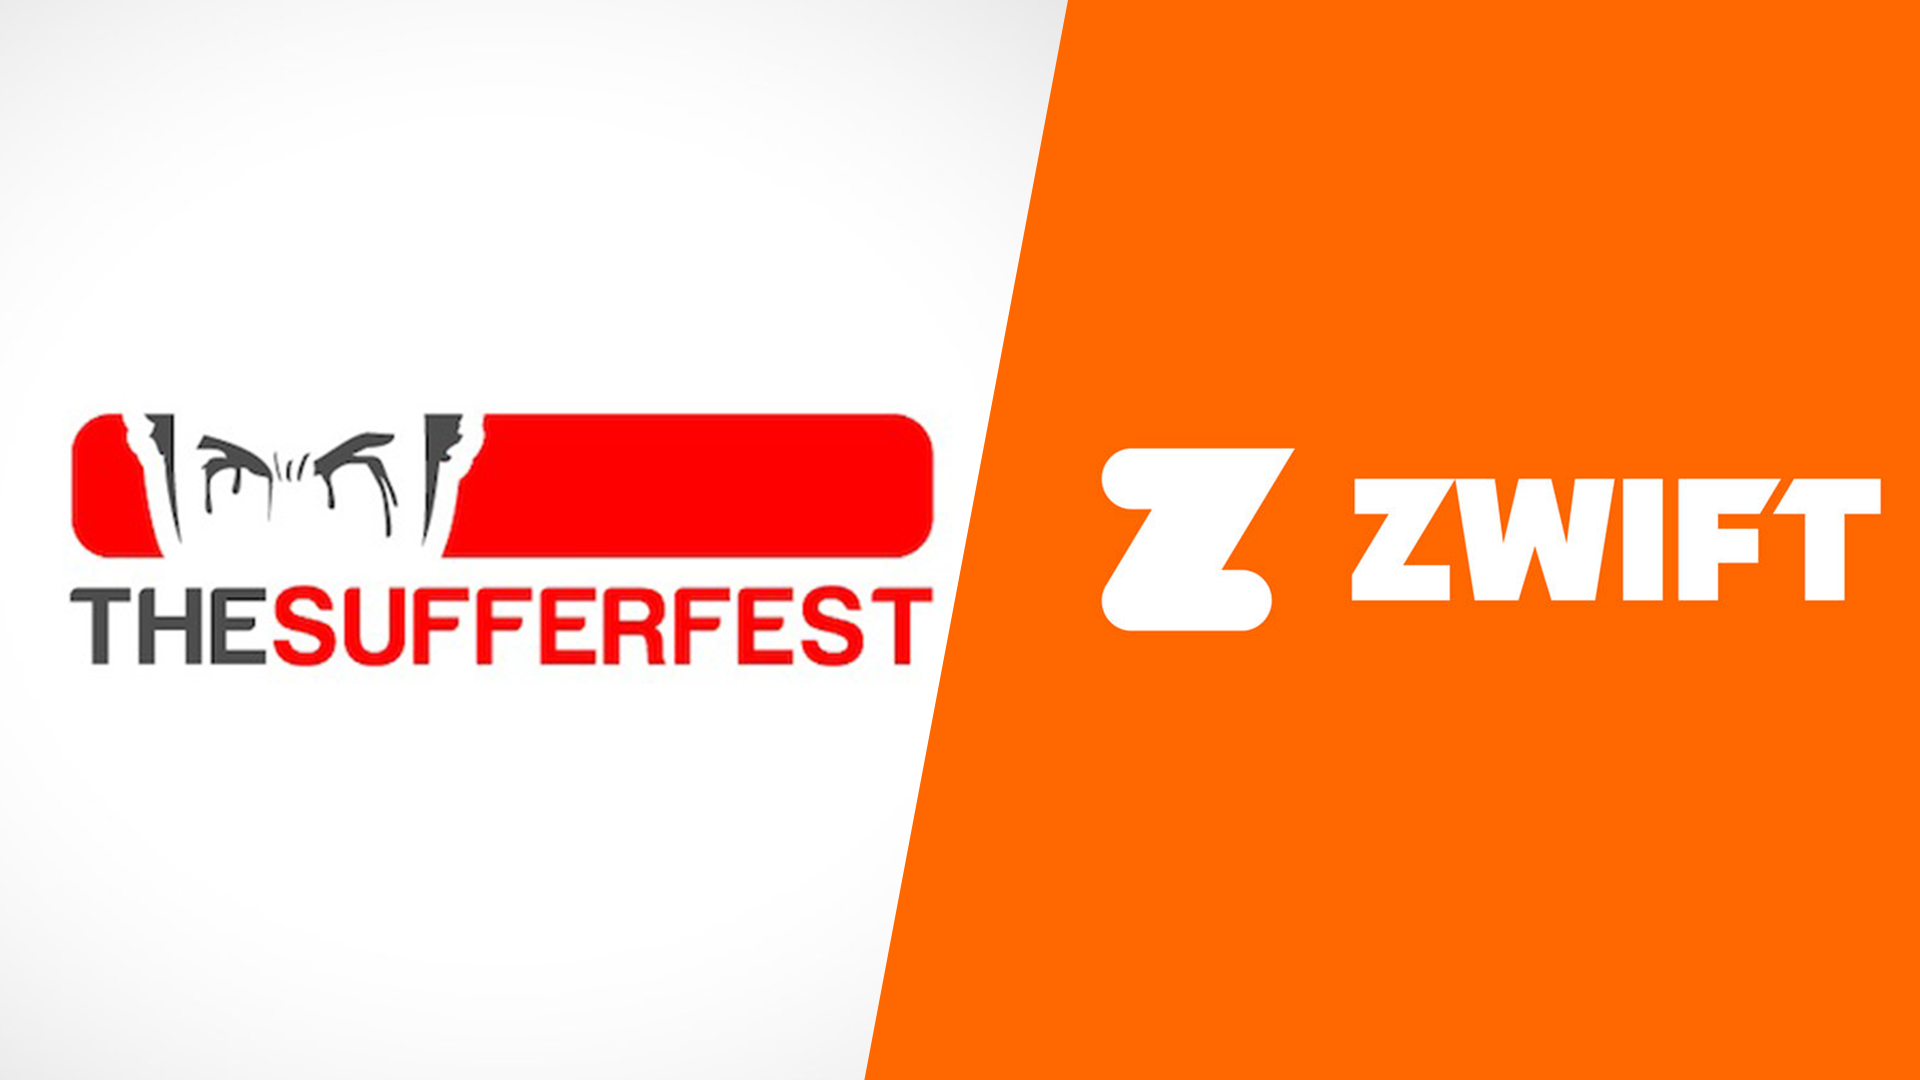 Comparing The Sufferfest and Zwift in terms of their features